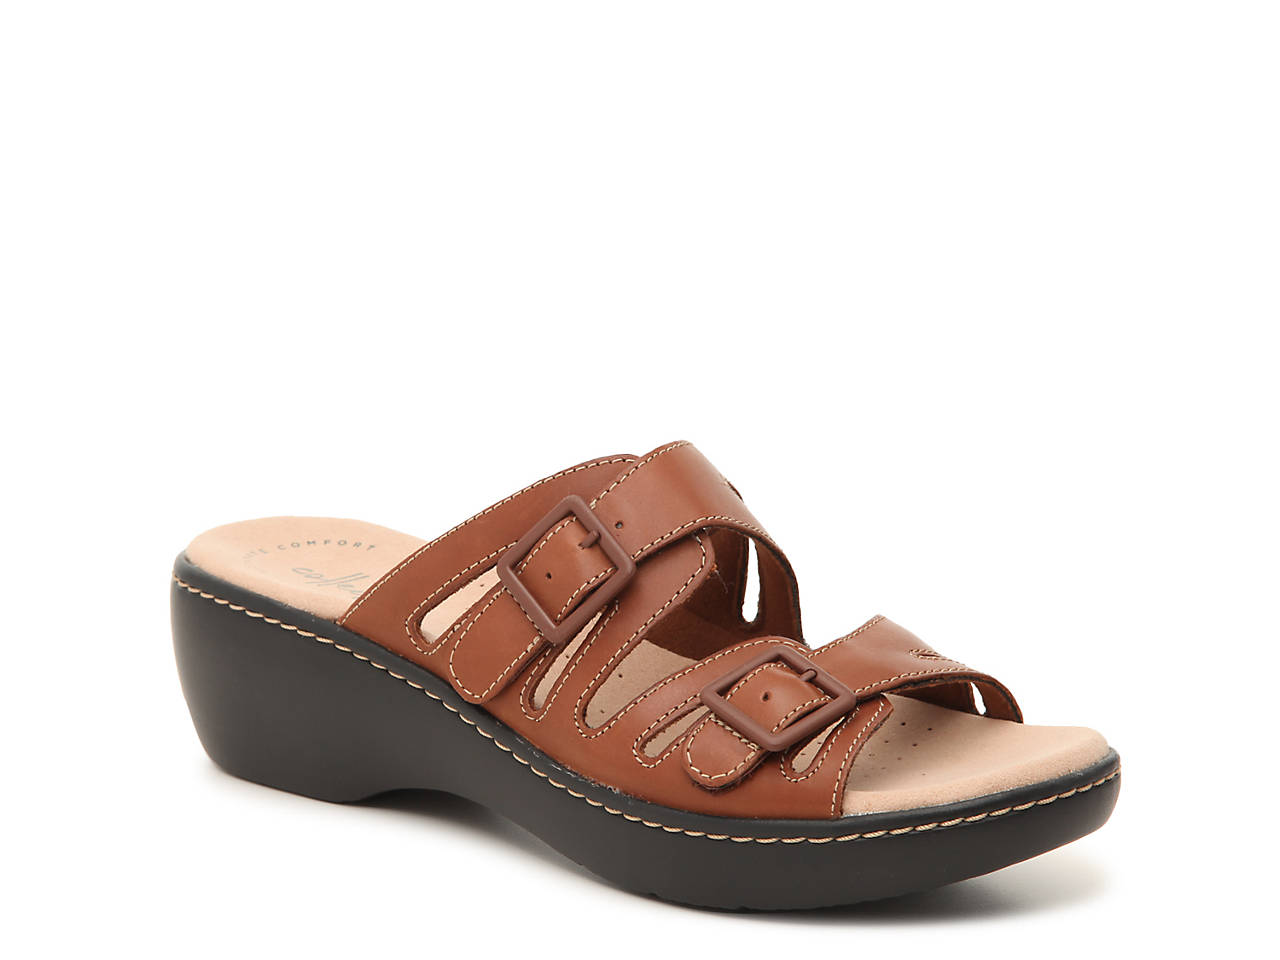 ecd48ef374b Clarks Delana Liri Wedge Sandal Women s Shoes